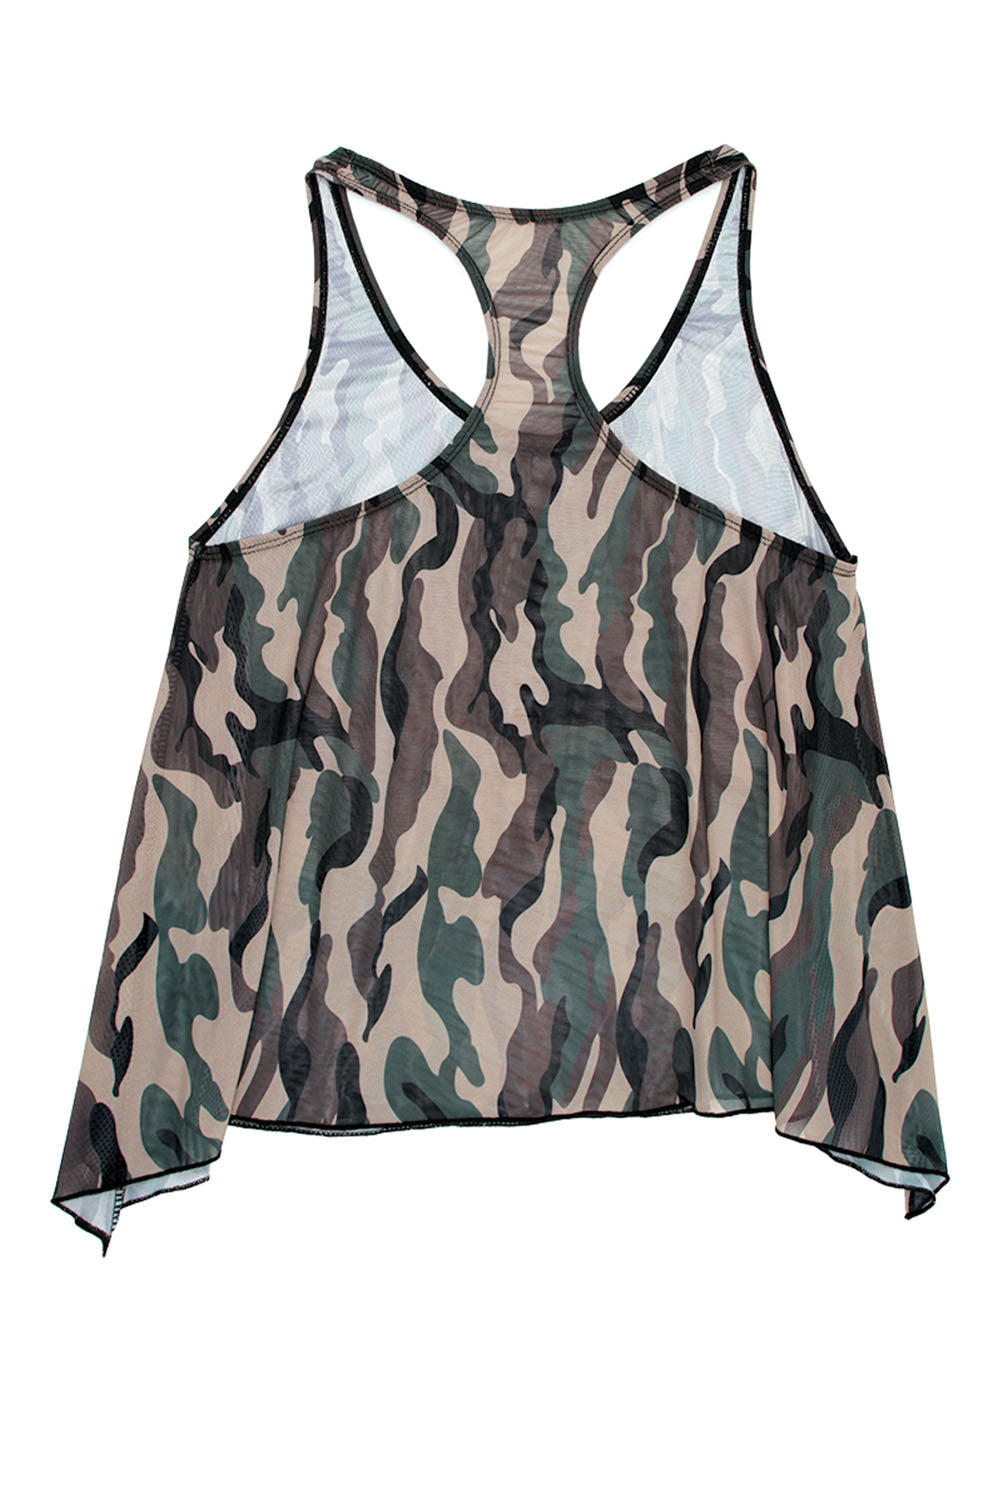 Savage Af Swing Top - Forest Camo - M-l